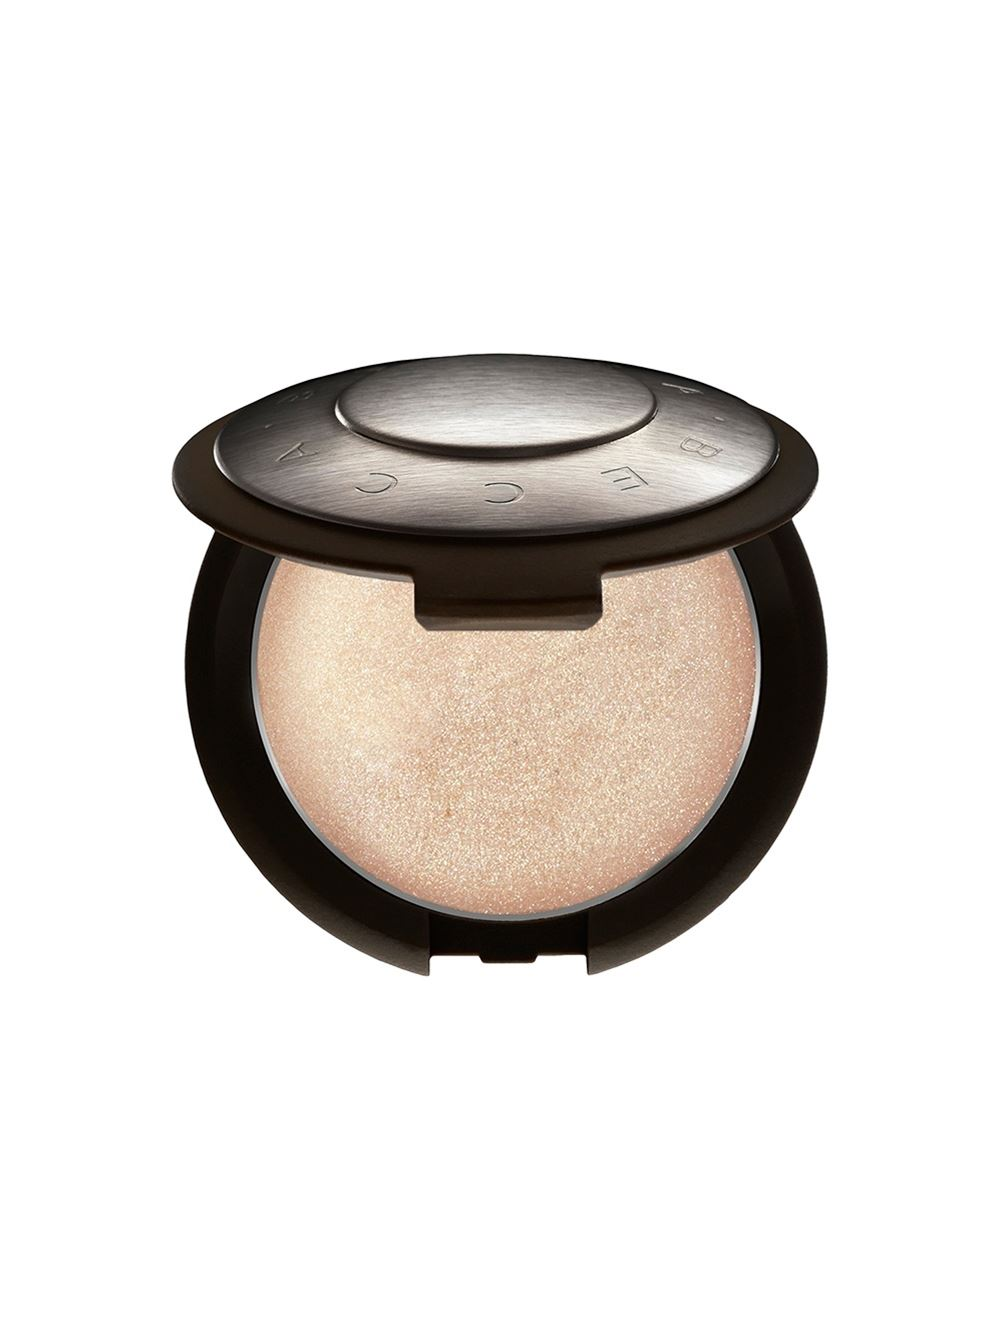 BECCA - SHIMMERING SKIN PERFECTOR PRESSED (MOONSTONE) £32